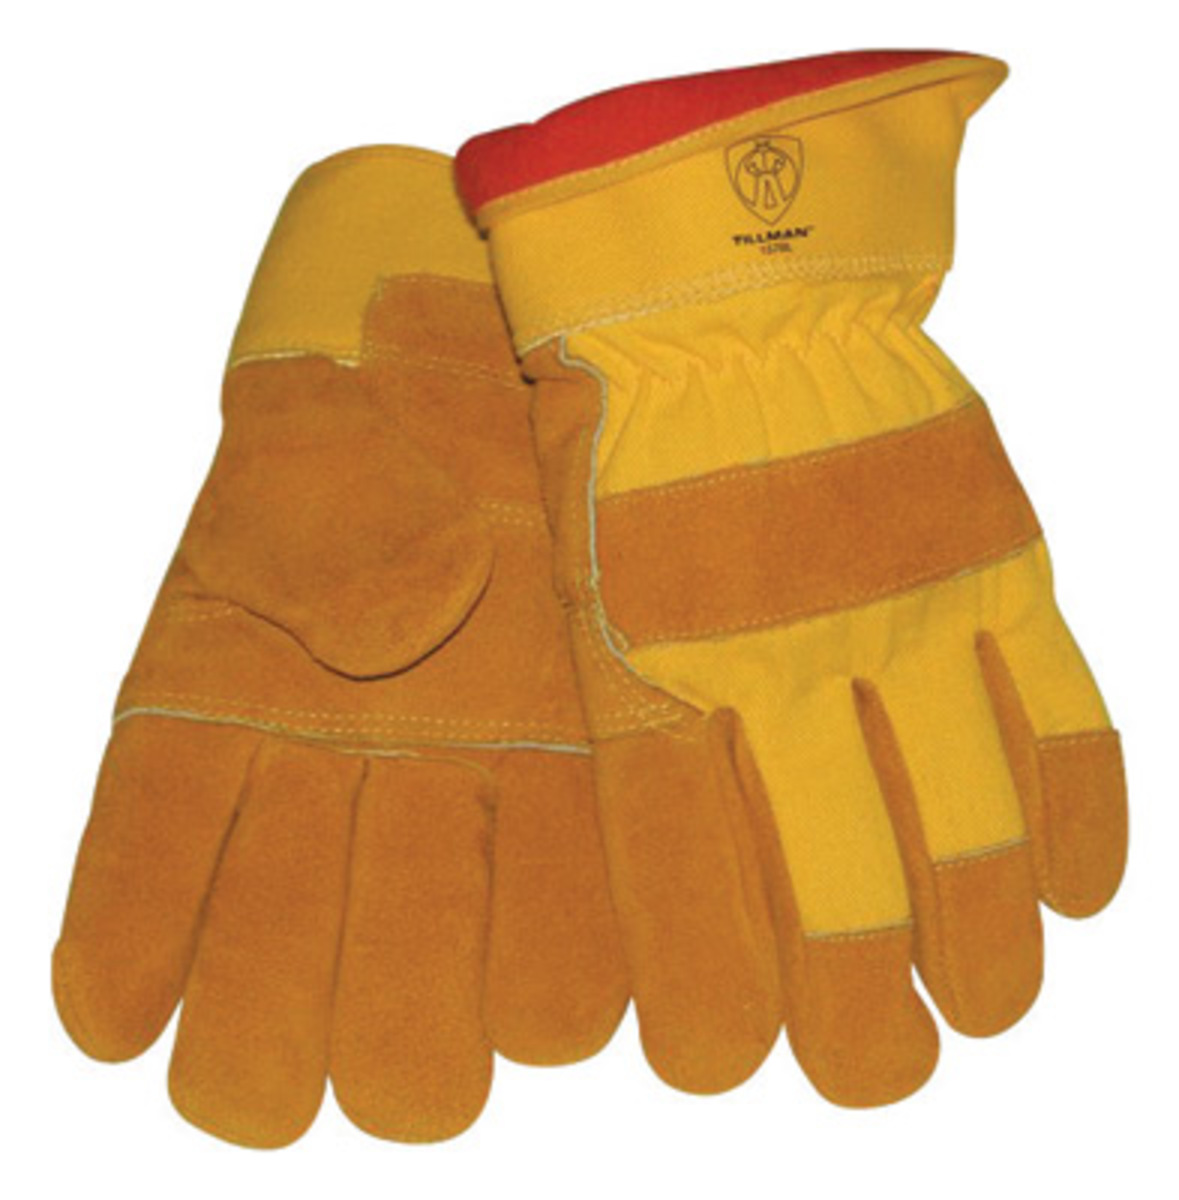 Tillman leather work gloves - Tillman Large Brown Split Cowhide Cotton And Foam Lined Cold Weather Work Gloves With Wing